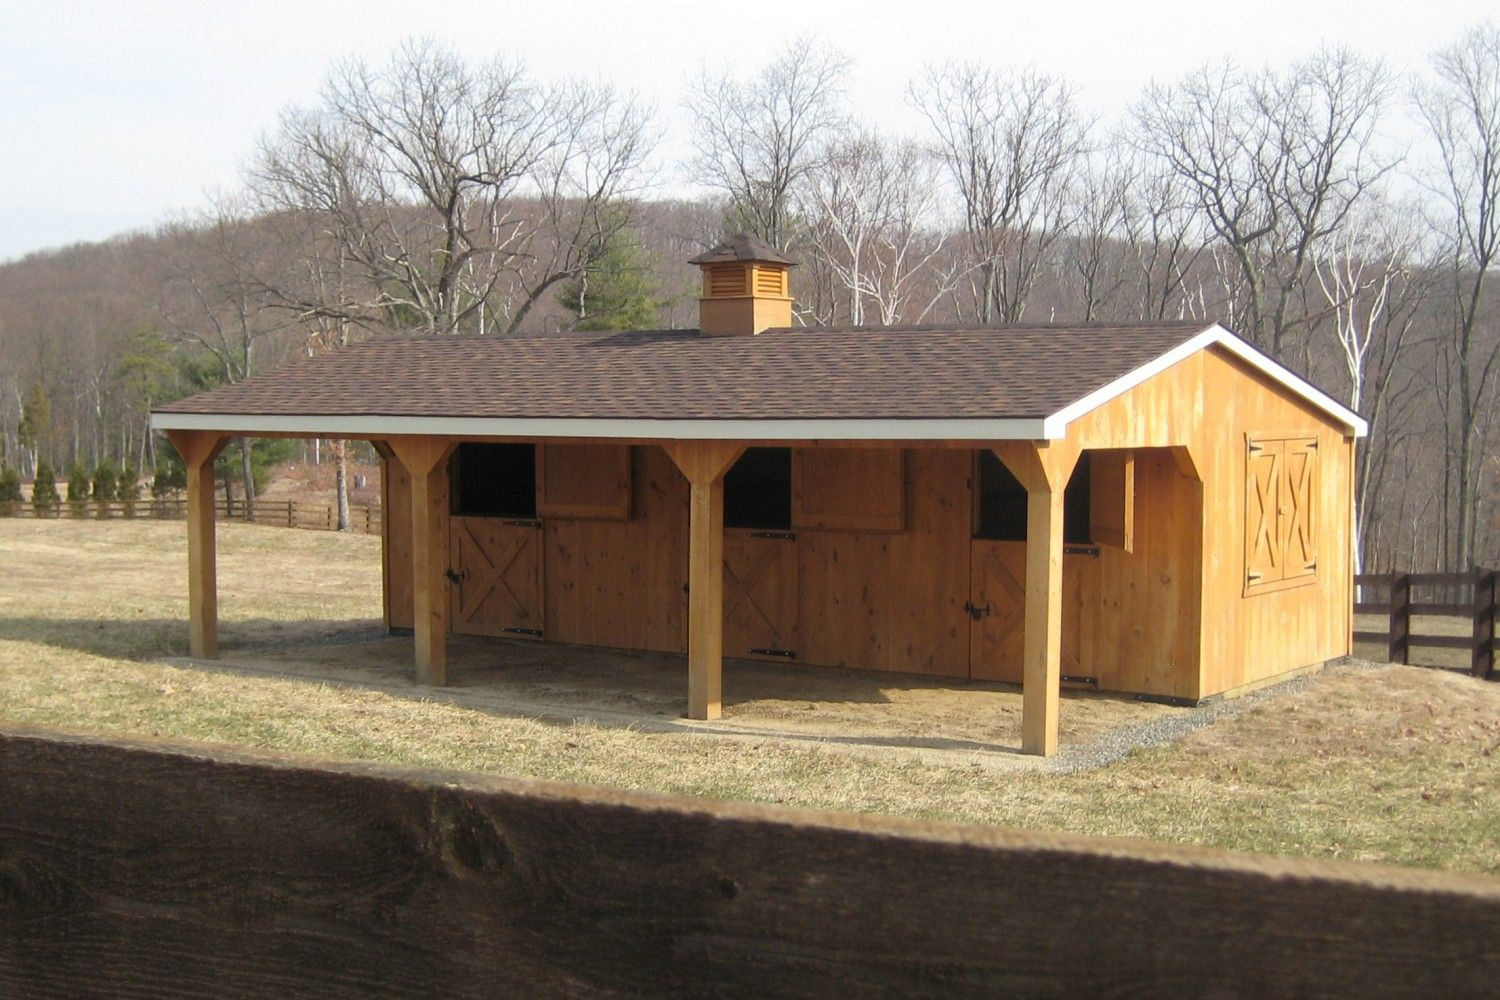 Horse Barns Beam Horse Barns Run In Shed Row Horse Barn With Overhang The Barn Horse